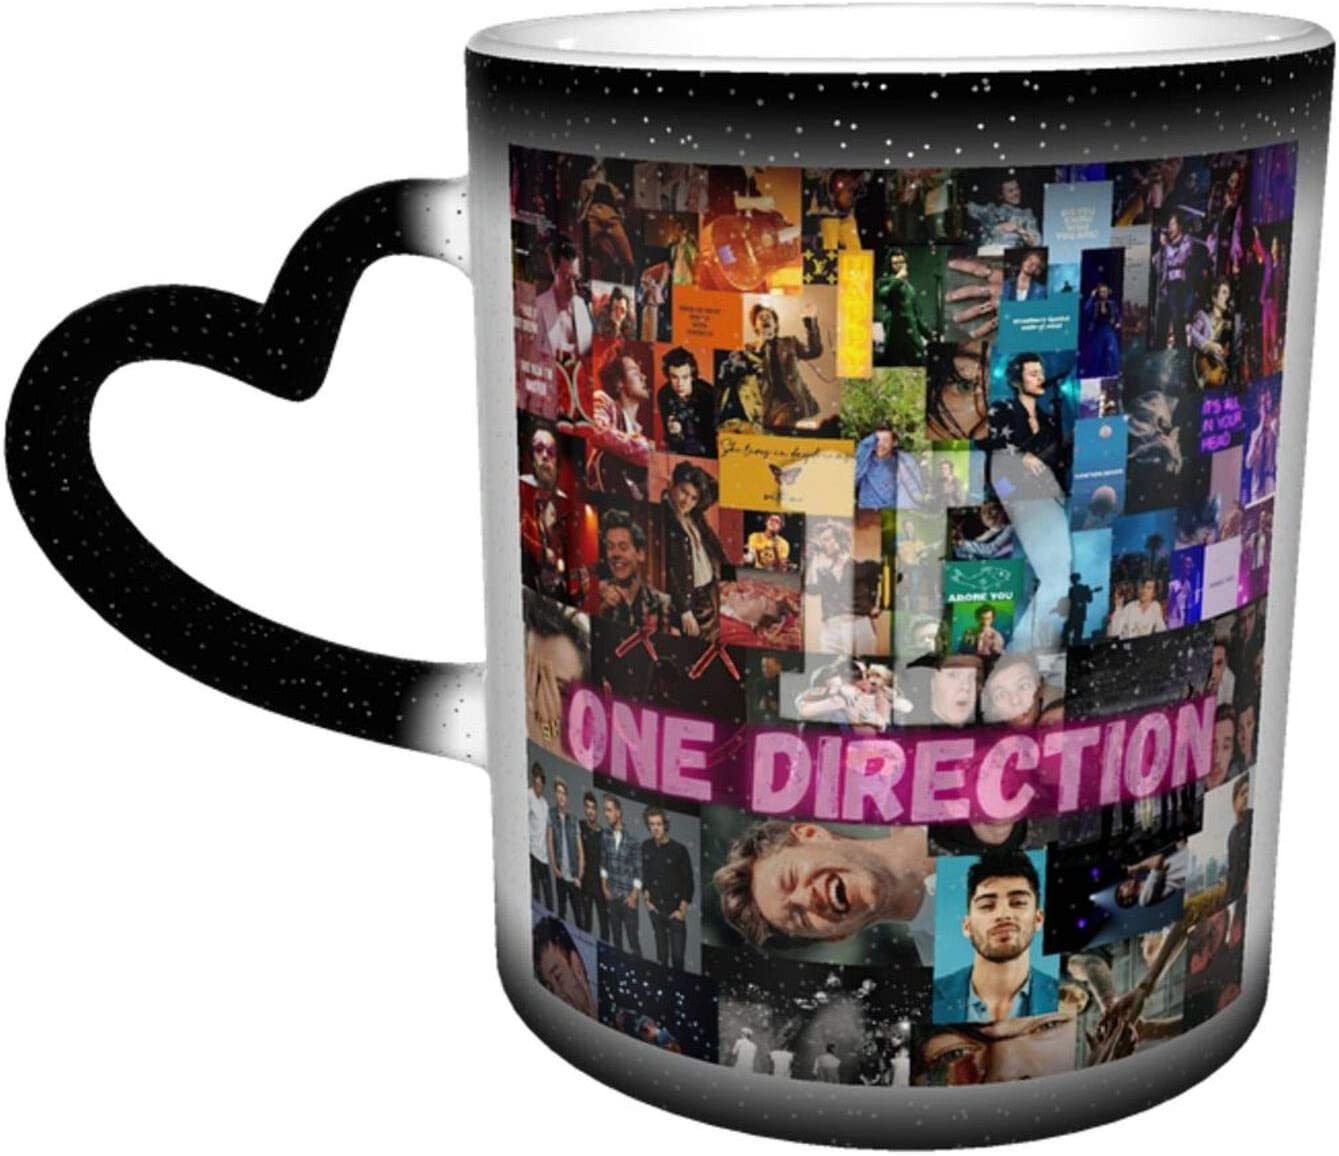 One D-irec-tion Ceramic Heat Color Changing Coffee Mug Cute Novelty Cool Mug Cup Tea Cup 11 Oz Great Gift For Birthday Room Decor Bar Office Home Gift Tea